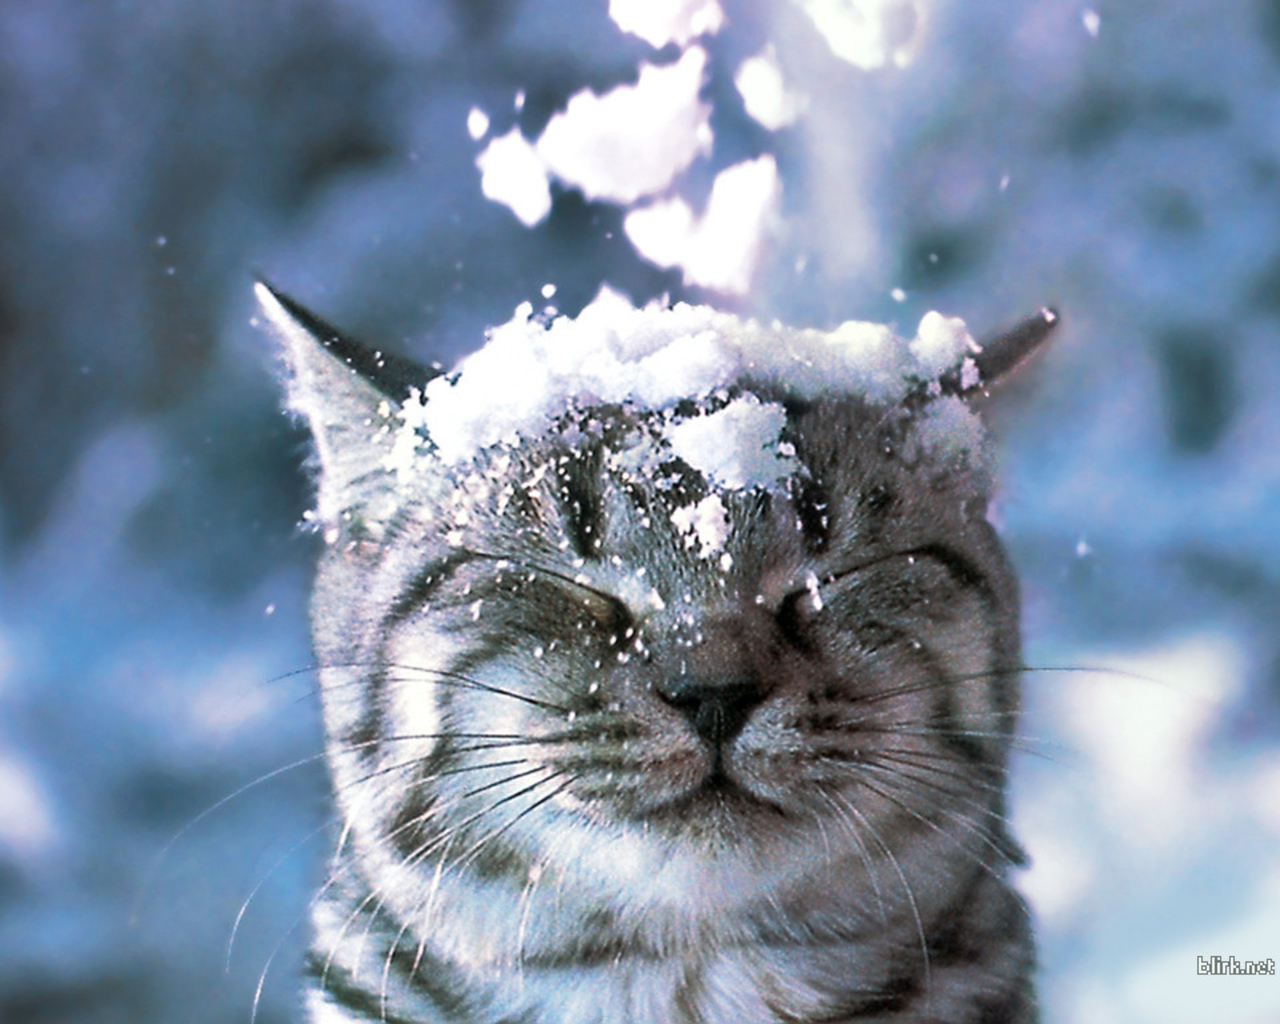 http://images5.fanpop.com/image/photos/28300000/Cat-in-the-Snow-Wallpaper-cats-28363007-1280-1024.jpg